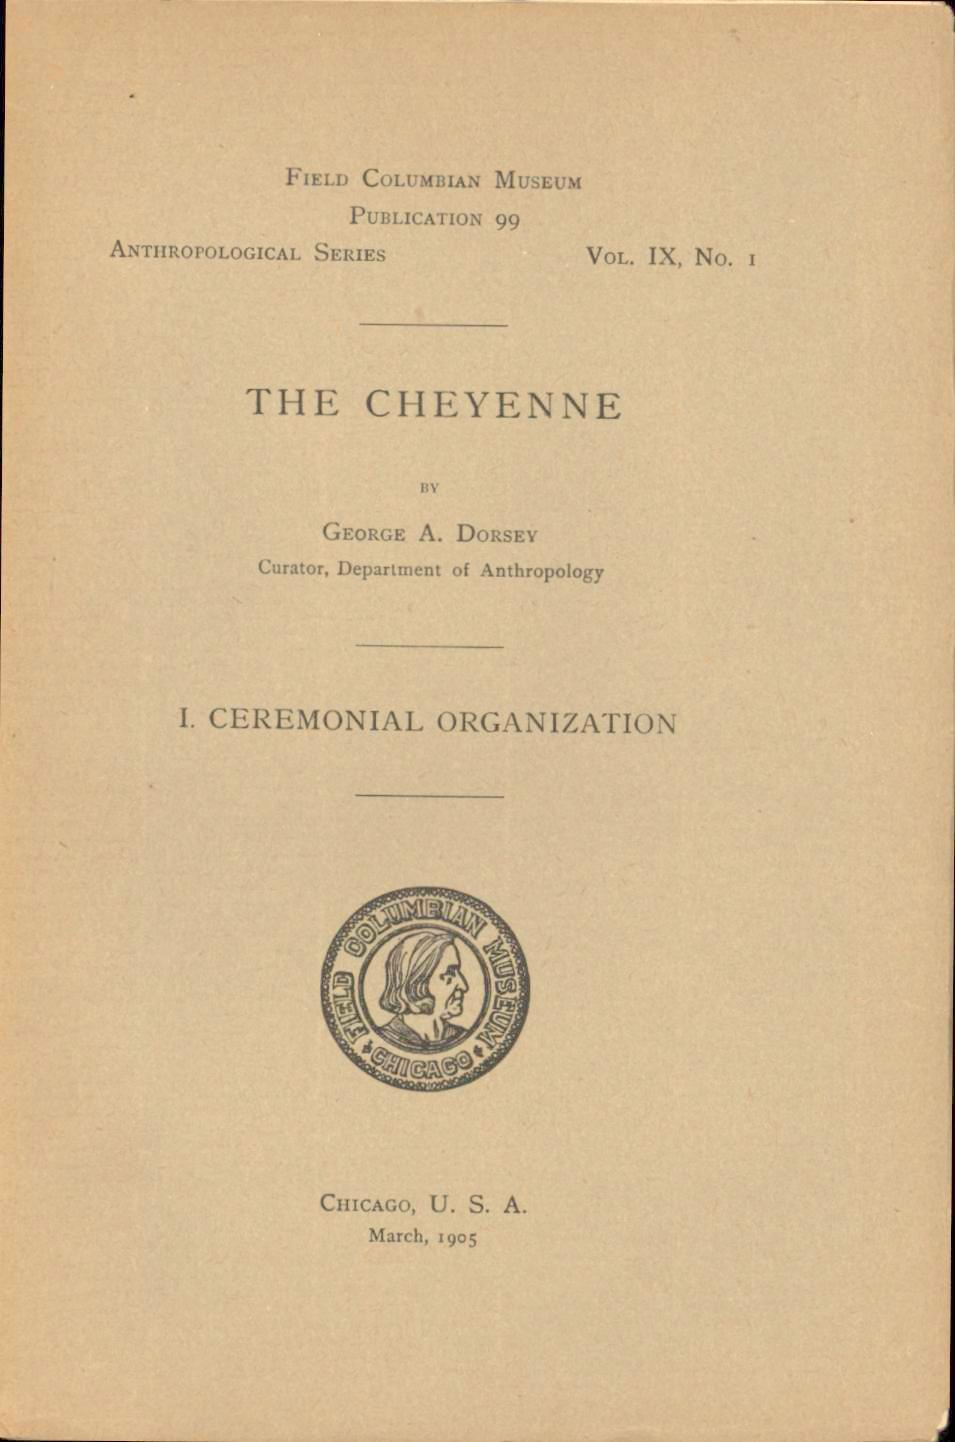 Image for The Cheyenne I. Ceremonial Organization: Field Columbian Museum Publication 99: Anthropological Series Vol. IX, No. 1 (First Edition)